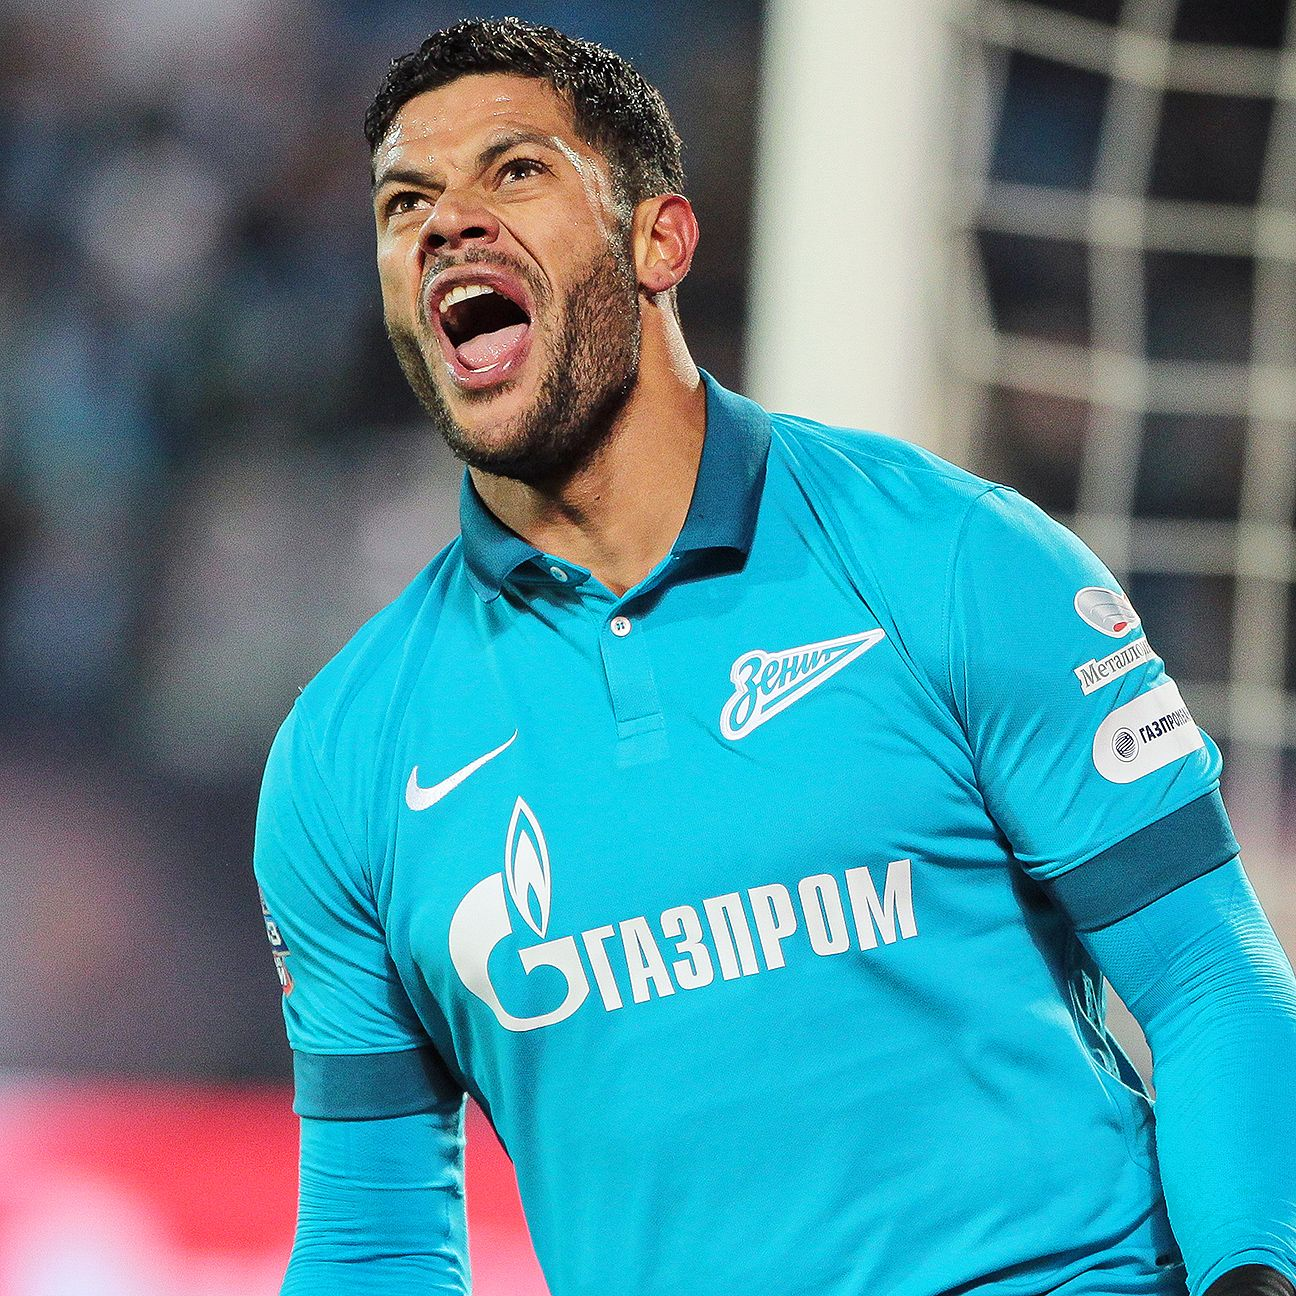 Group H with Valencia, Lyon, Gent and Hulk's Zenit is expected to be evenly matched.